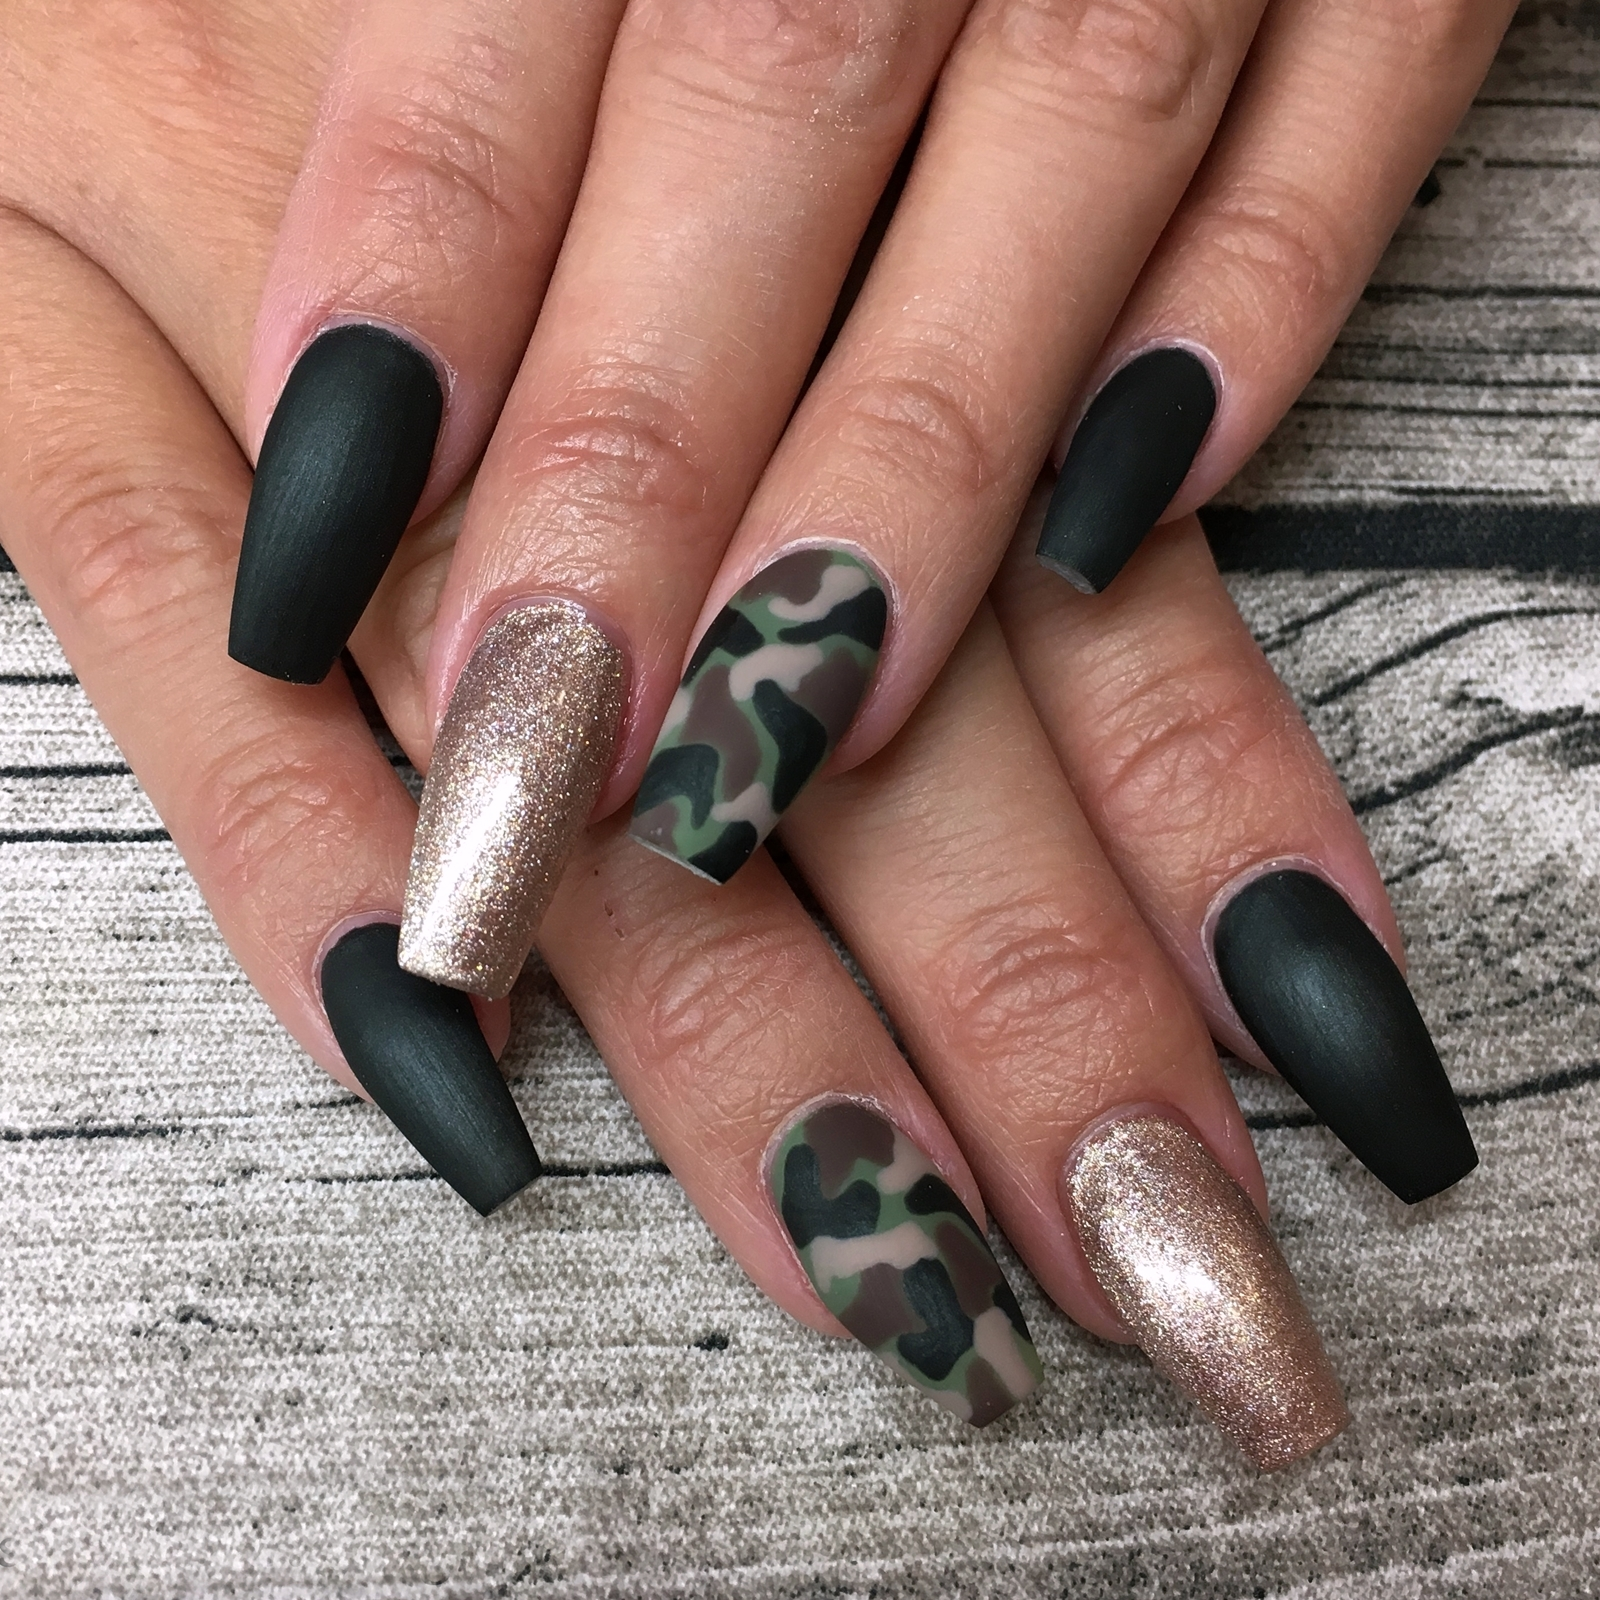 Nail art inspiration camouflage nails matt versiegelt for Nageldesign matt